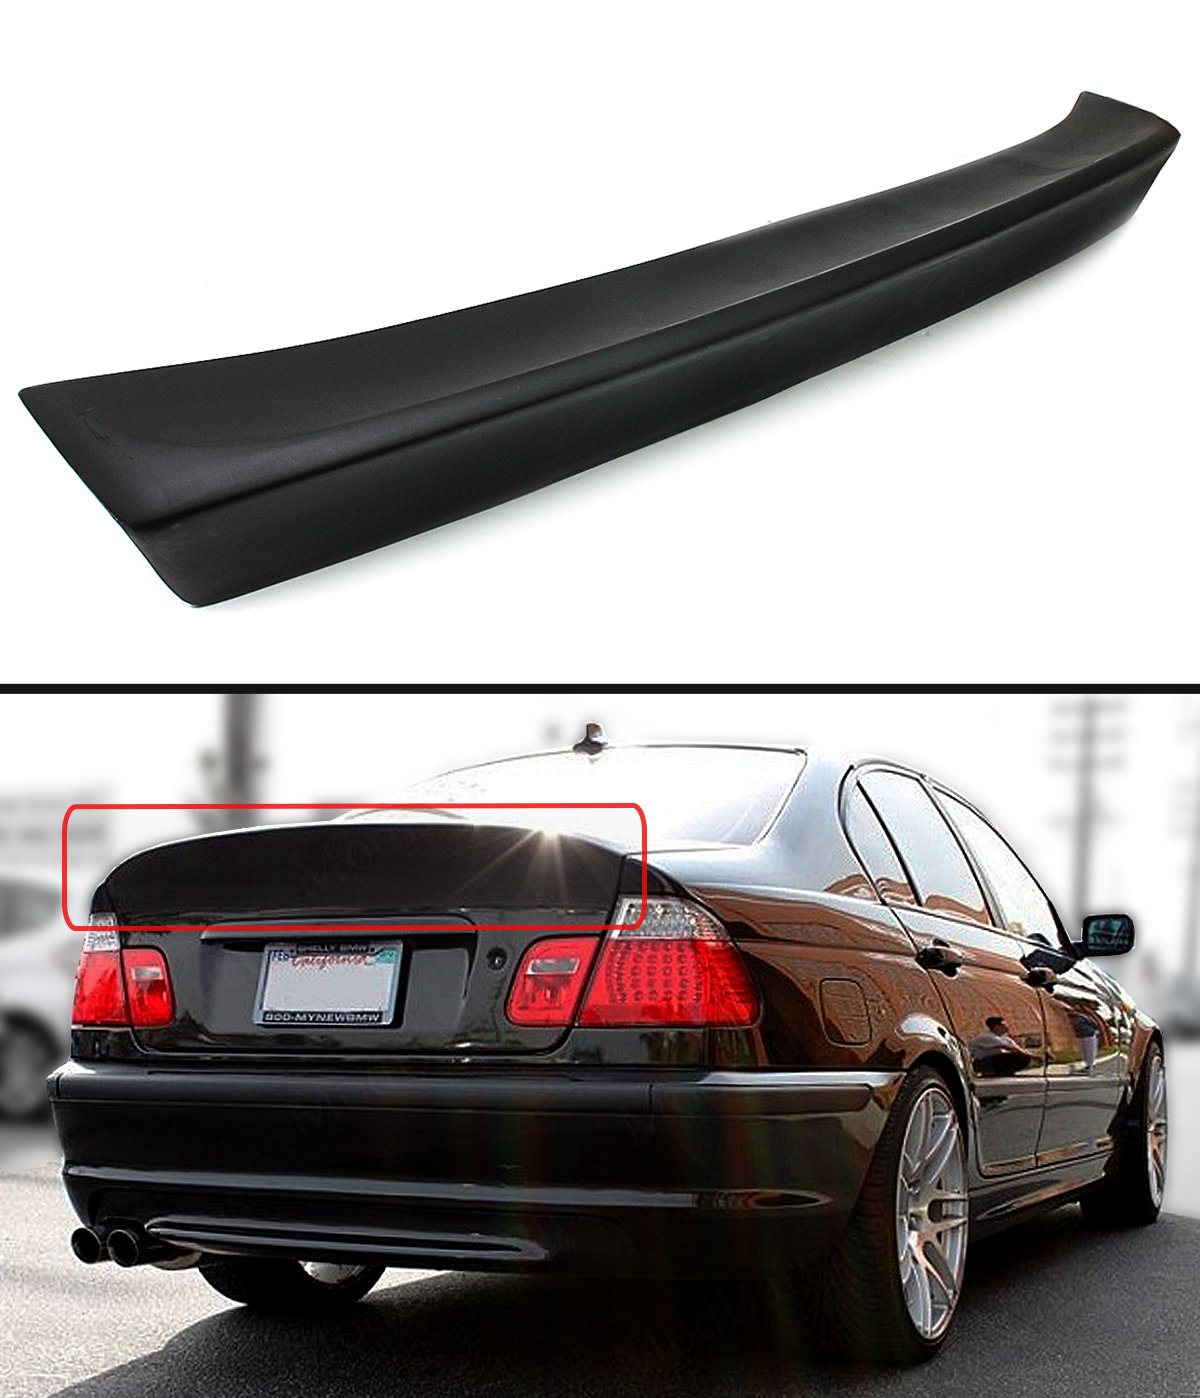 Cuztom Tuning Csl Style Rear Trunk Duckbill High Kick Spoiler Wing Fits For 1999 2005 Bmw E46 3 Series 4dr Sedan